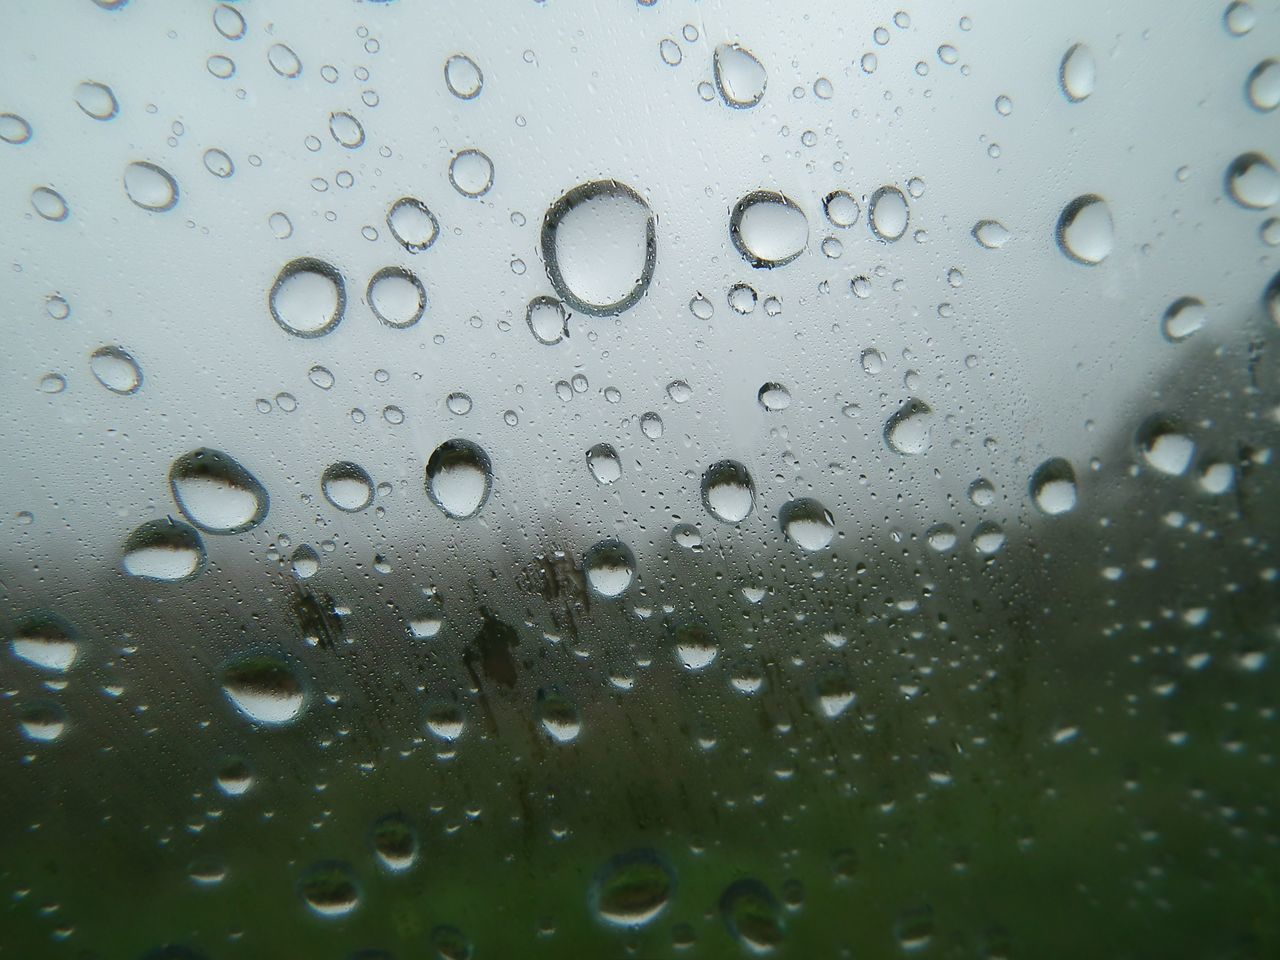 Backgrounds Close-up Day Drop Fragility Freshness Full Frame Glass Glass - Material Nature No People Outdoors Rain RainDrop Rainy Season Sky Transparent Water Weather Wet Window